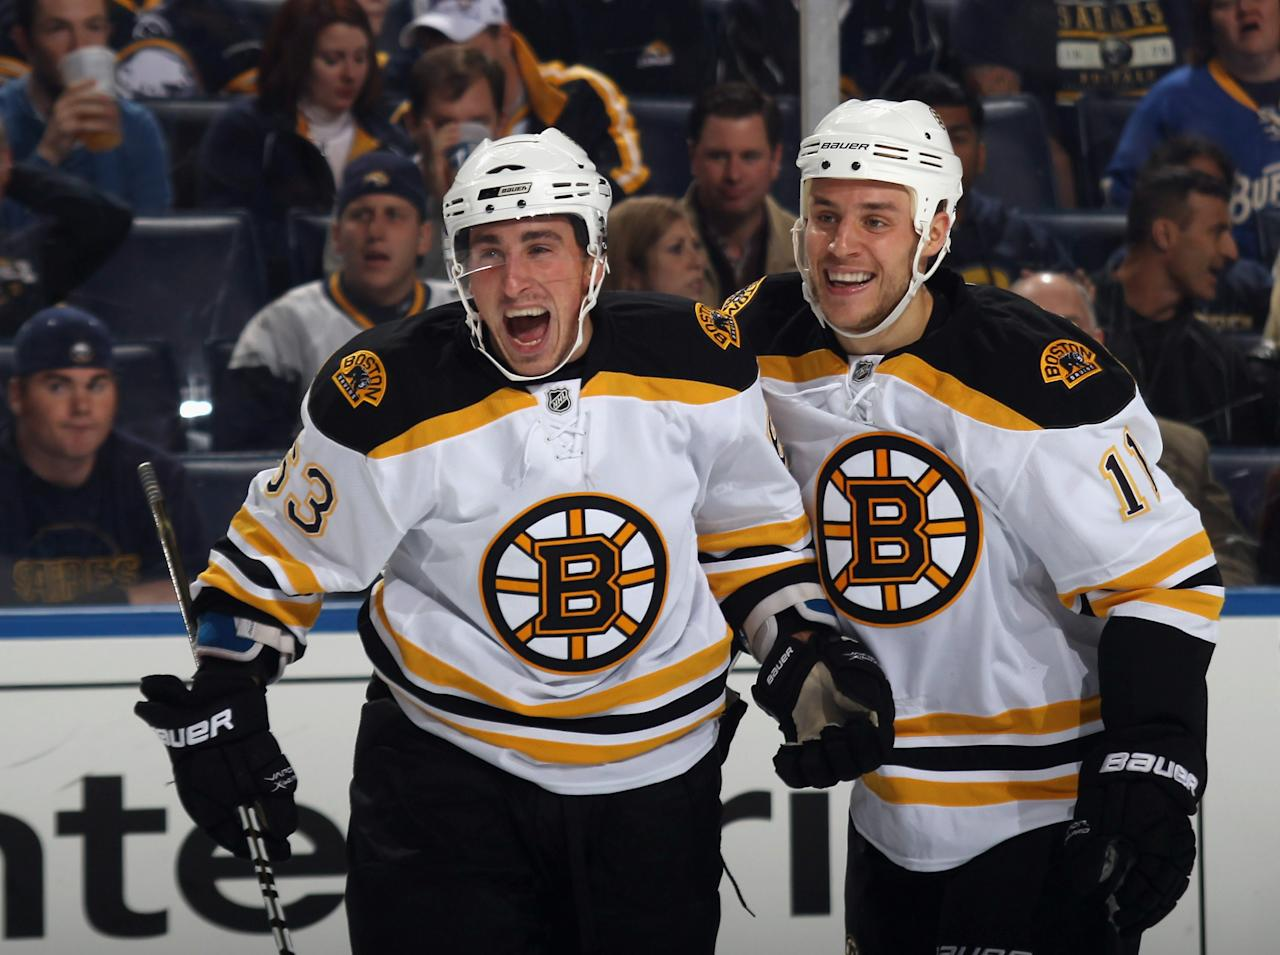 BUFFALO, NY - NOVEMBER 03:  Brad Marchand #63 (L) of the Boston Bruins scores his first NHL goal in the first period against the Buffalo Sabres and is joined by Gregory Campbell #11 (R) at the HSBC Arena on November 3, 2010 in Buffalo, New York.  The Bruins defeated the Sabres 5-2.(Photo by Bruce Bennett/Getty Images)